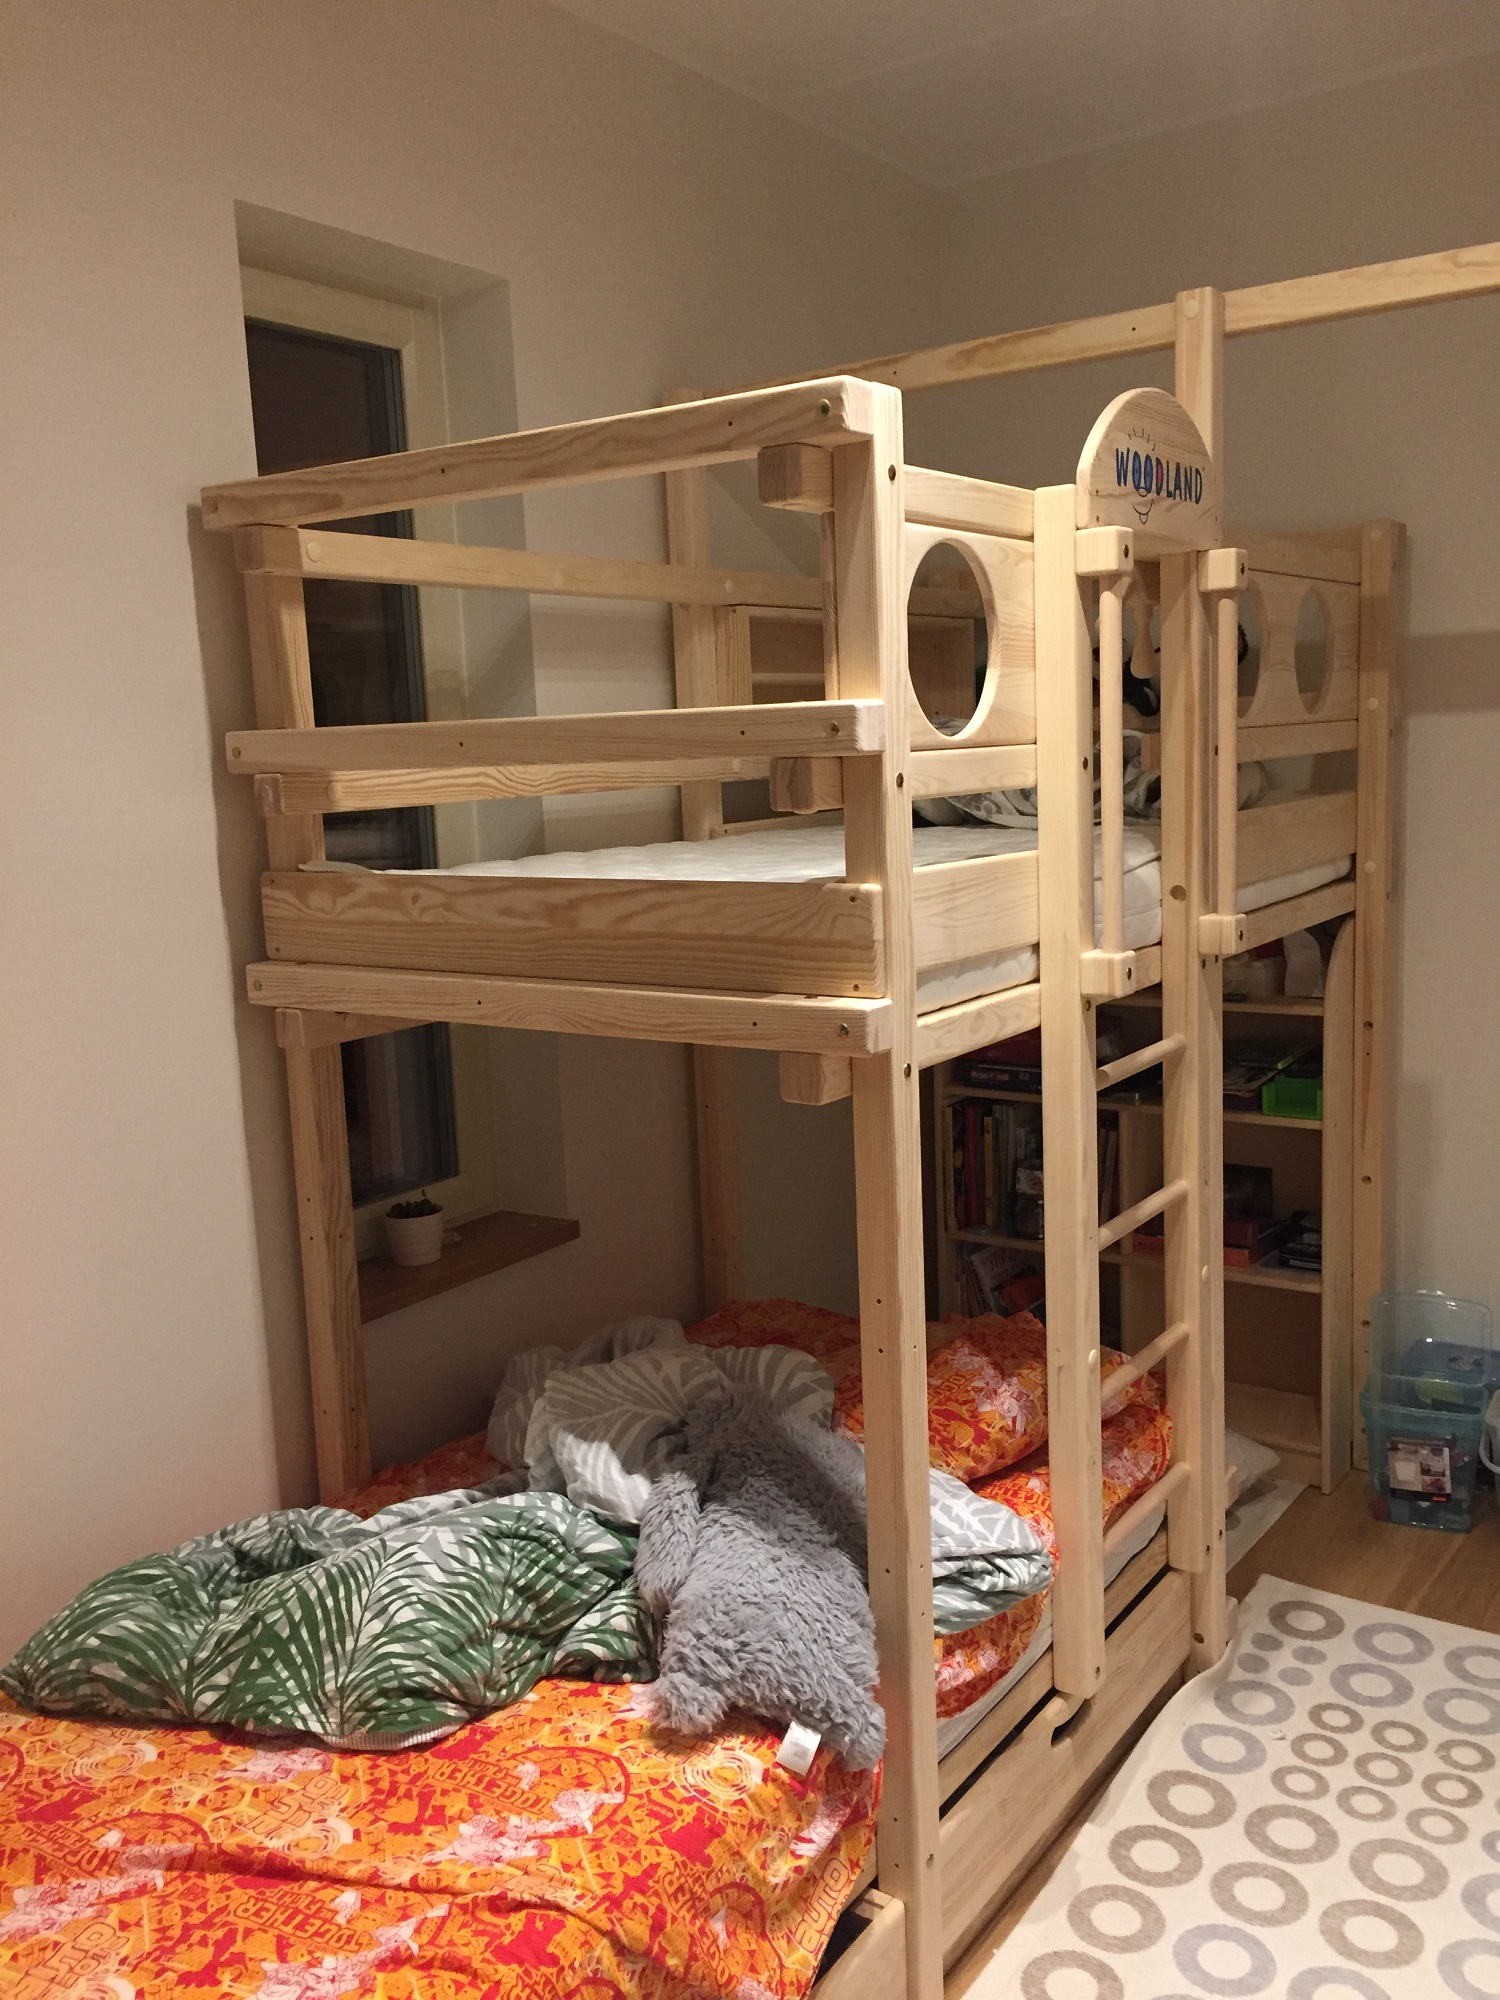 A real photo of AMARILLO bunk bed by Roman (2)